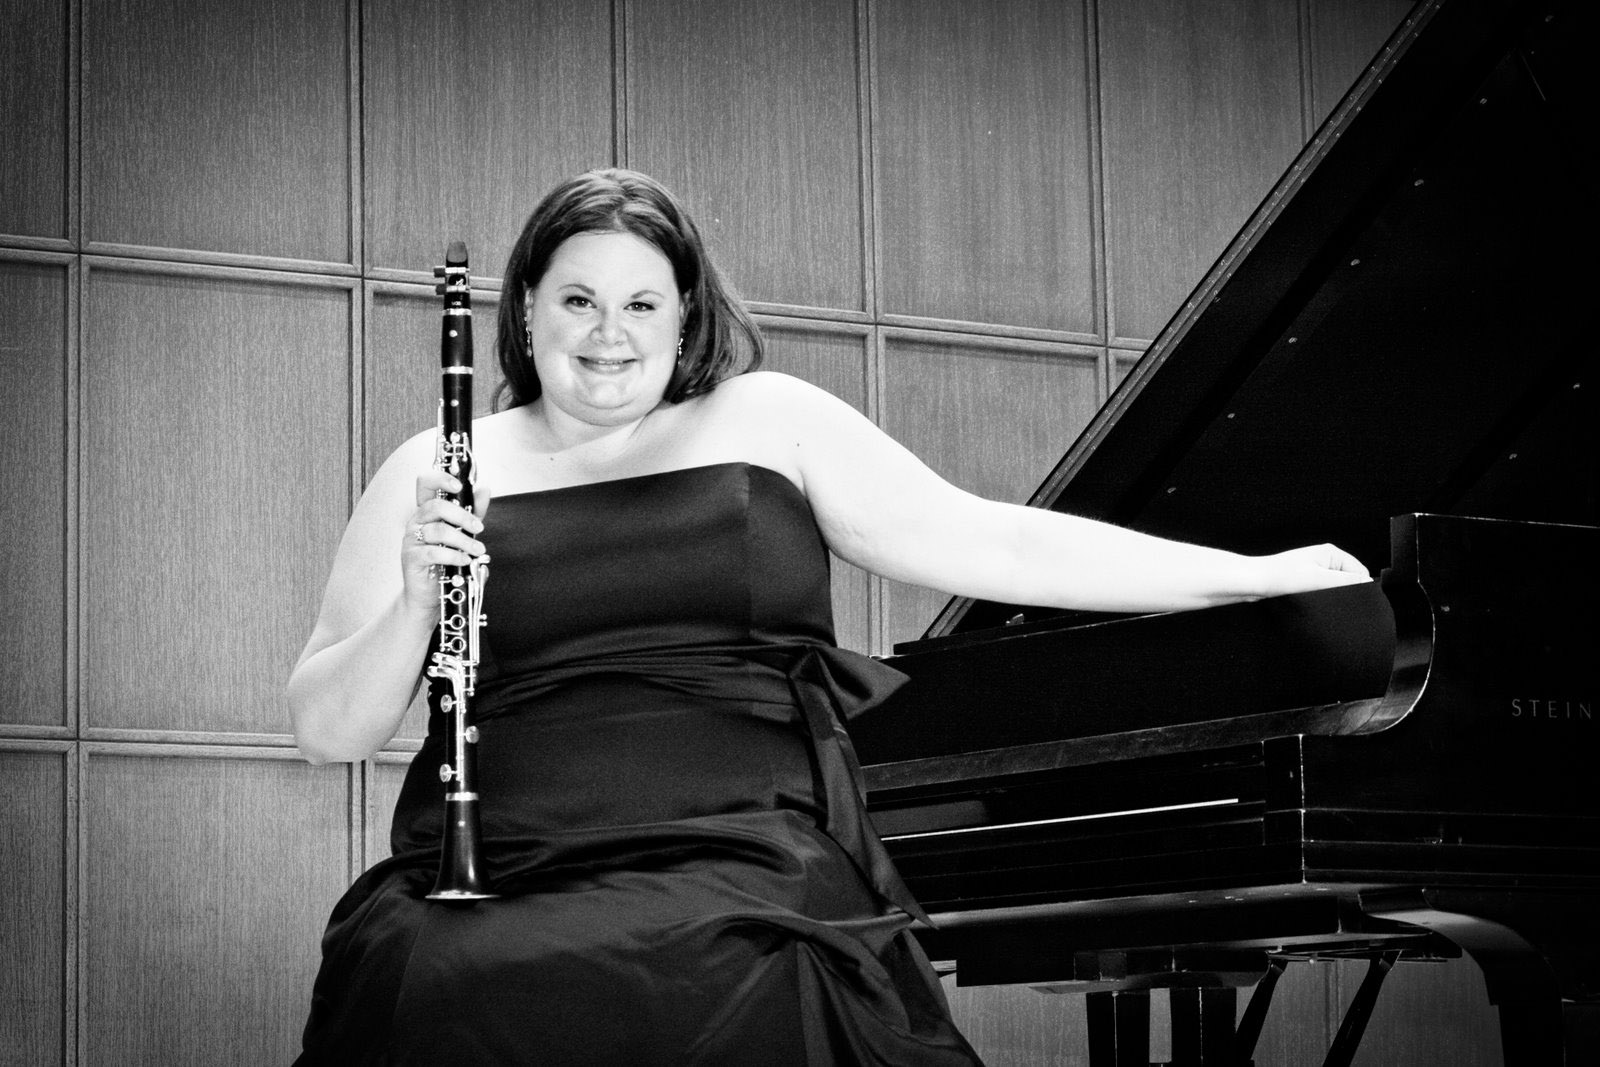 UCO presents a performance featuring assistant professor of clarinet Dawn Marie Lindblade, D.M.A., at 7:30 p.m., Sept. 24 at the UCO Jazz Lab, 100 E. Fifth Street in Edmond.